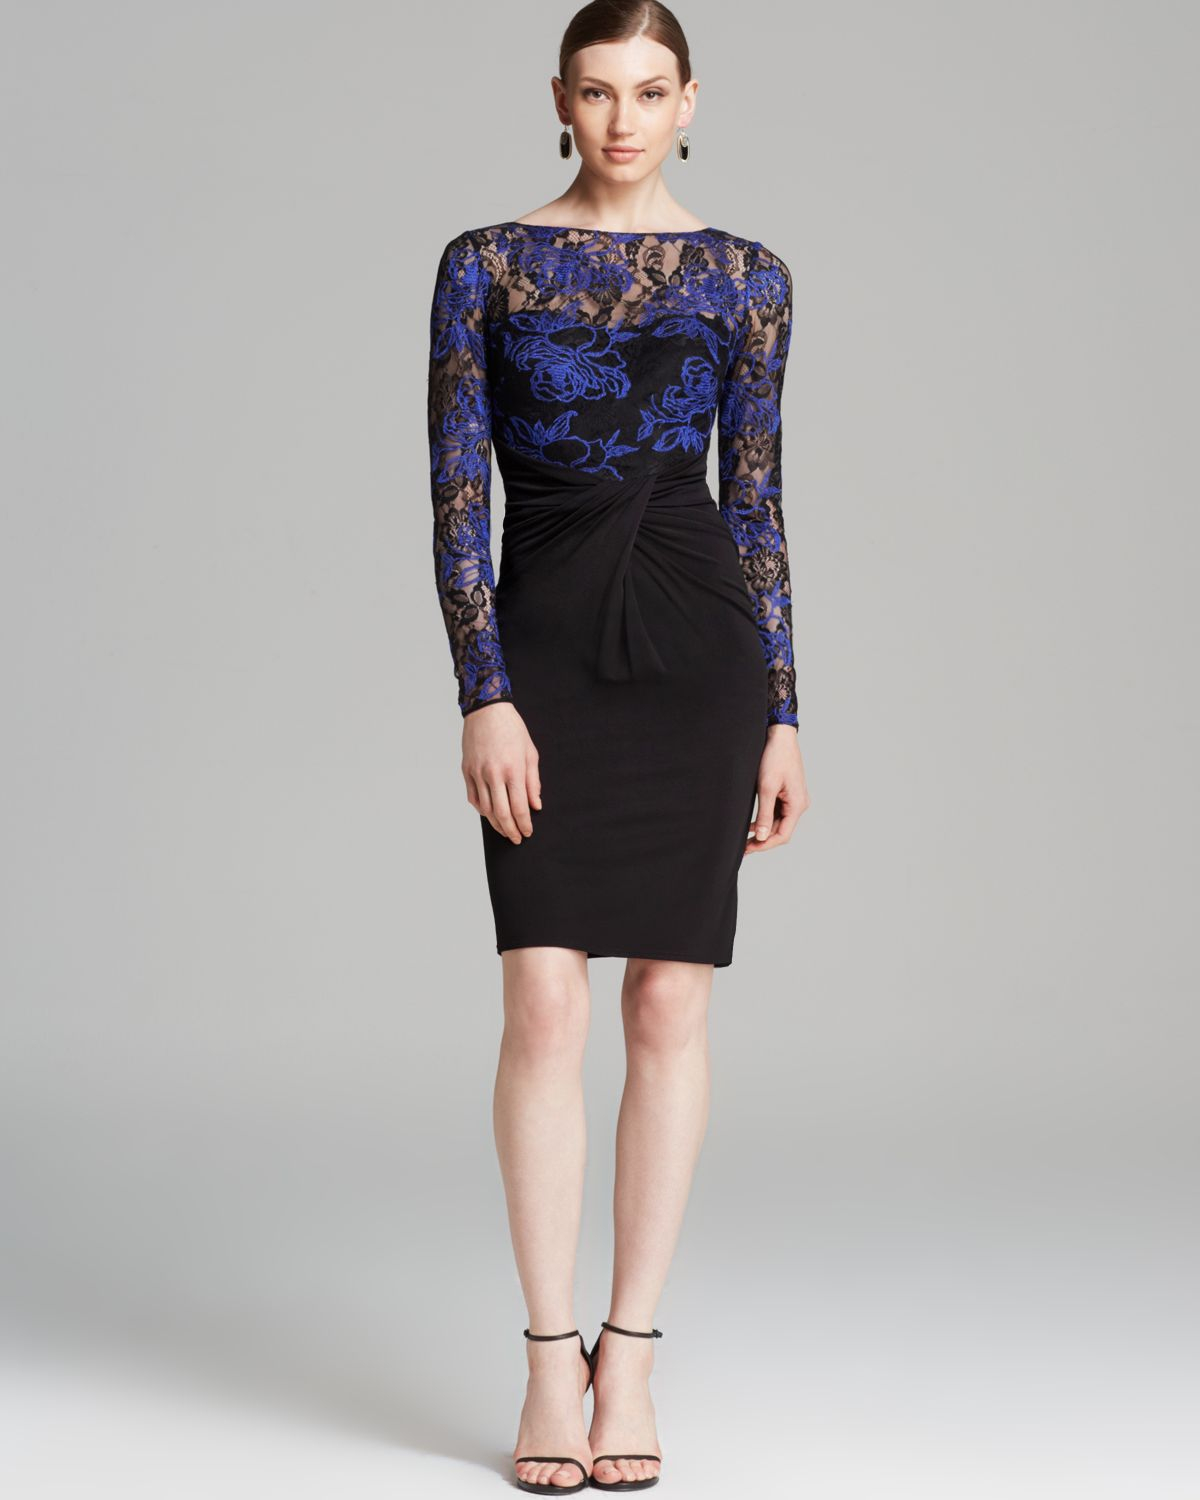 Monif c black dress lace